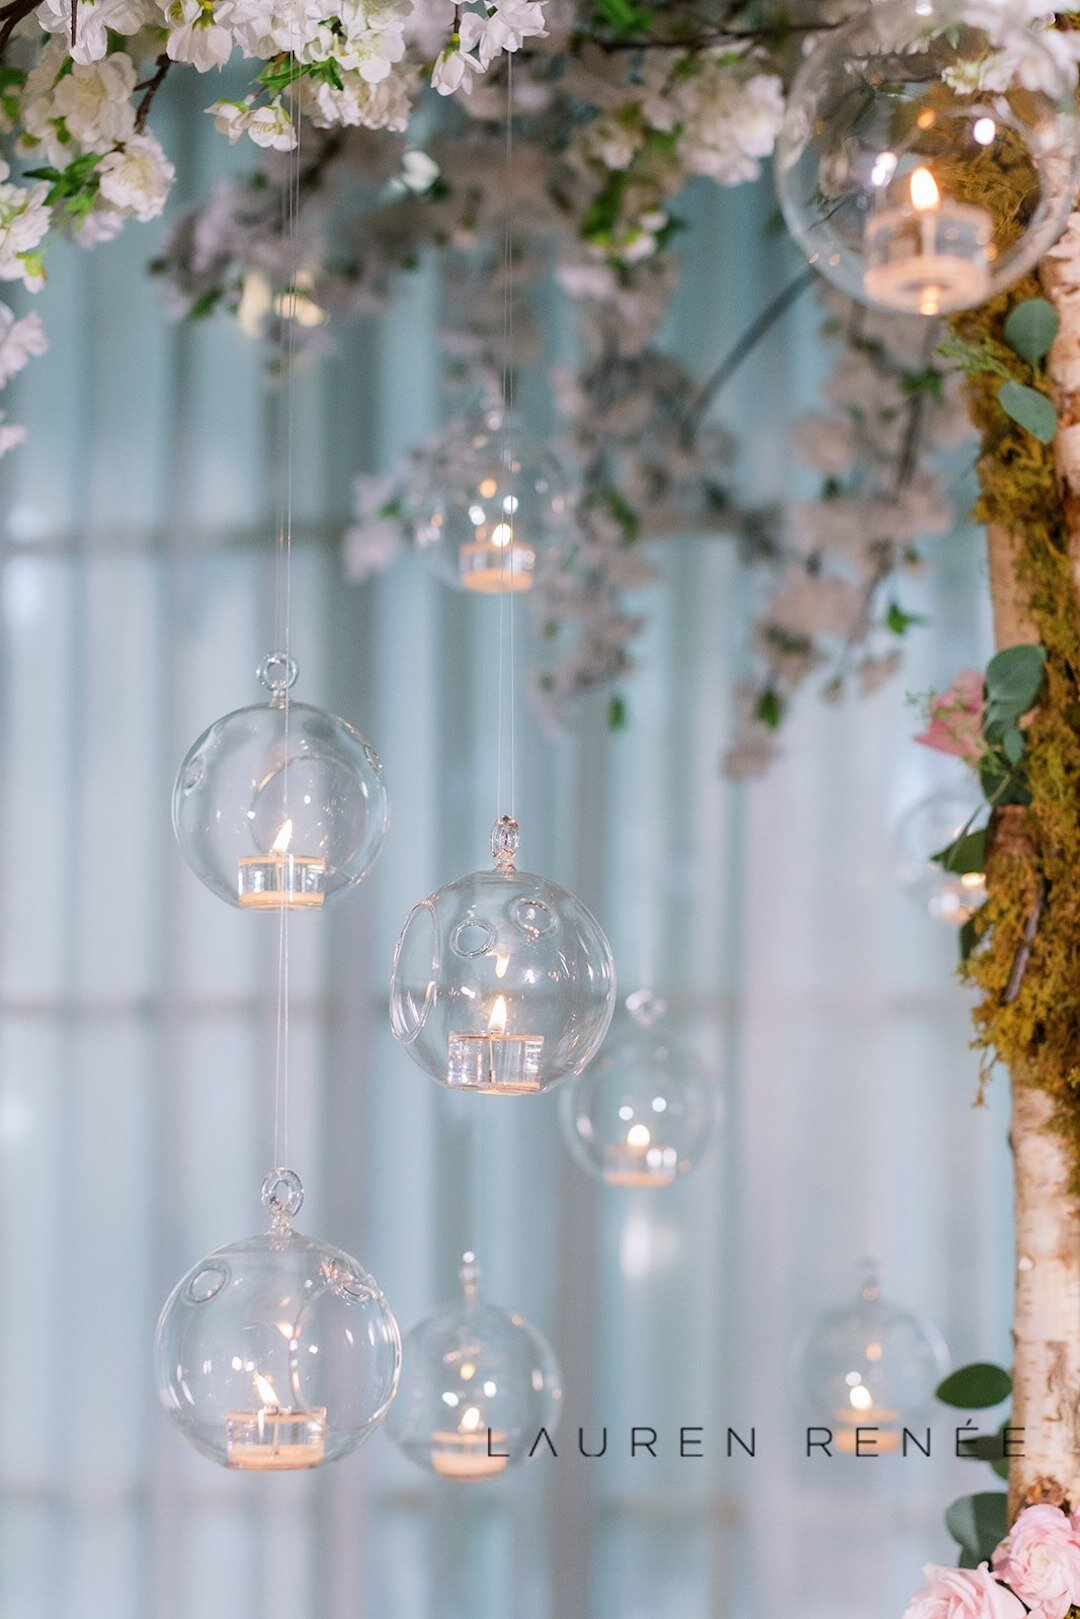 Candlelight hanging from trees at wedding: Romantic Blush Wedding at the Pittsburgh Field Club planned by Exhale Events. See more at exhale-events.com!